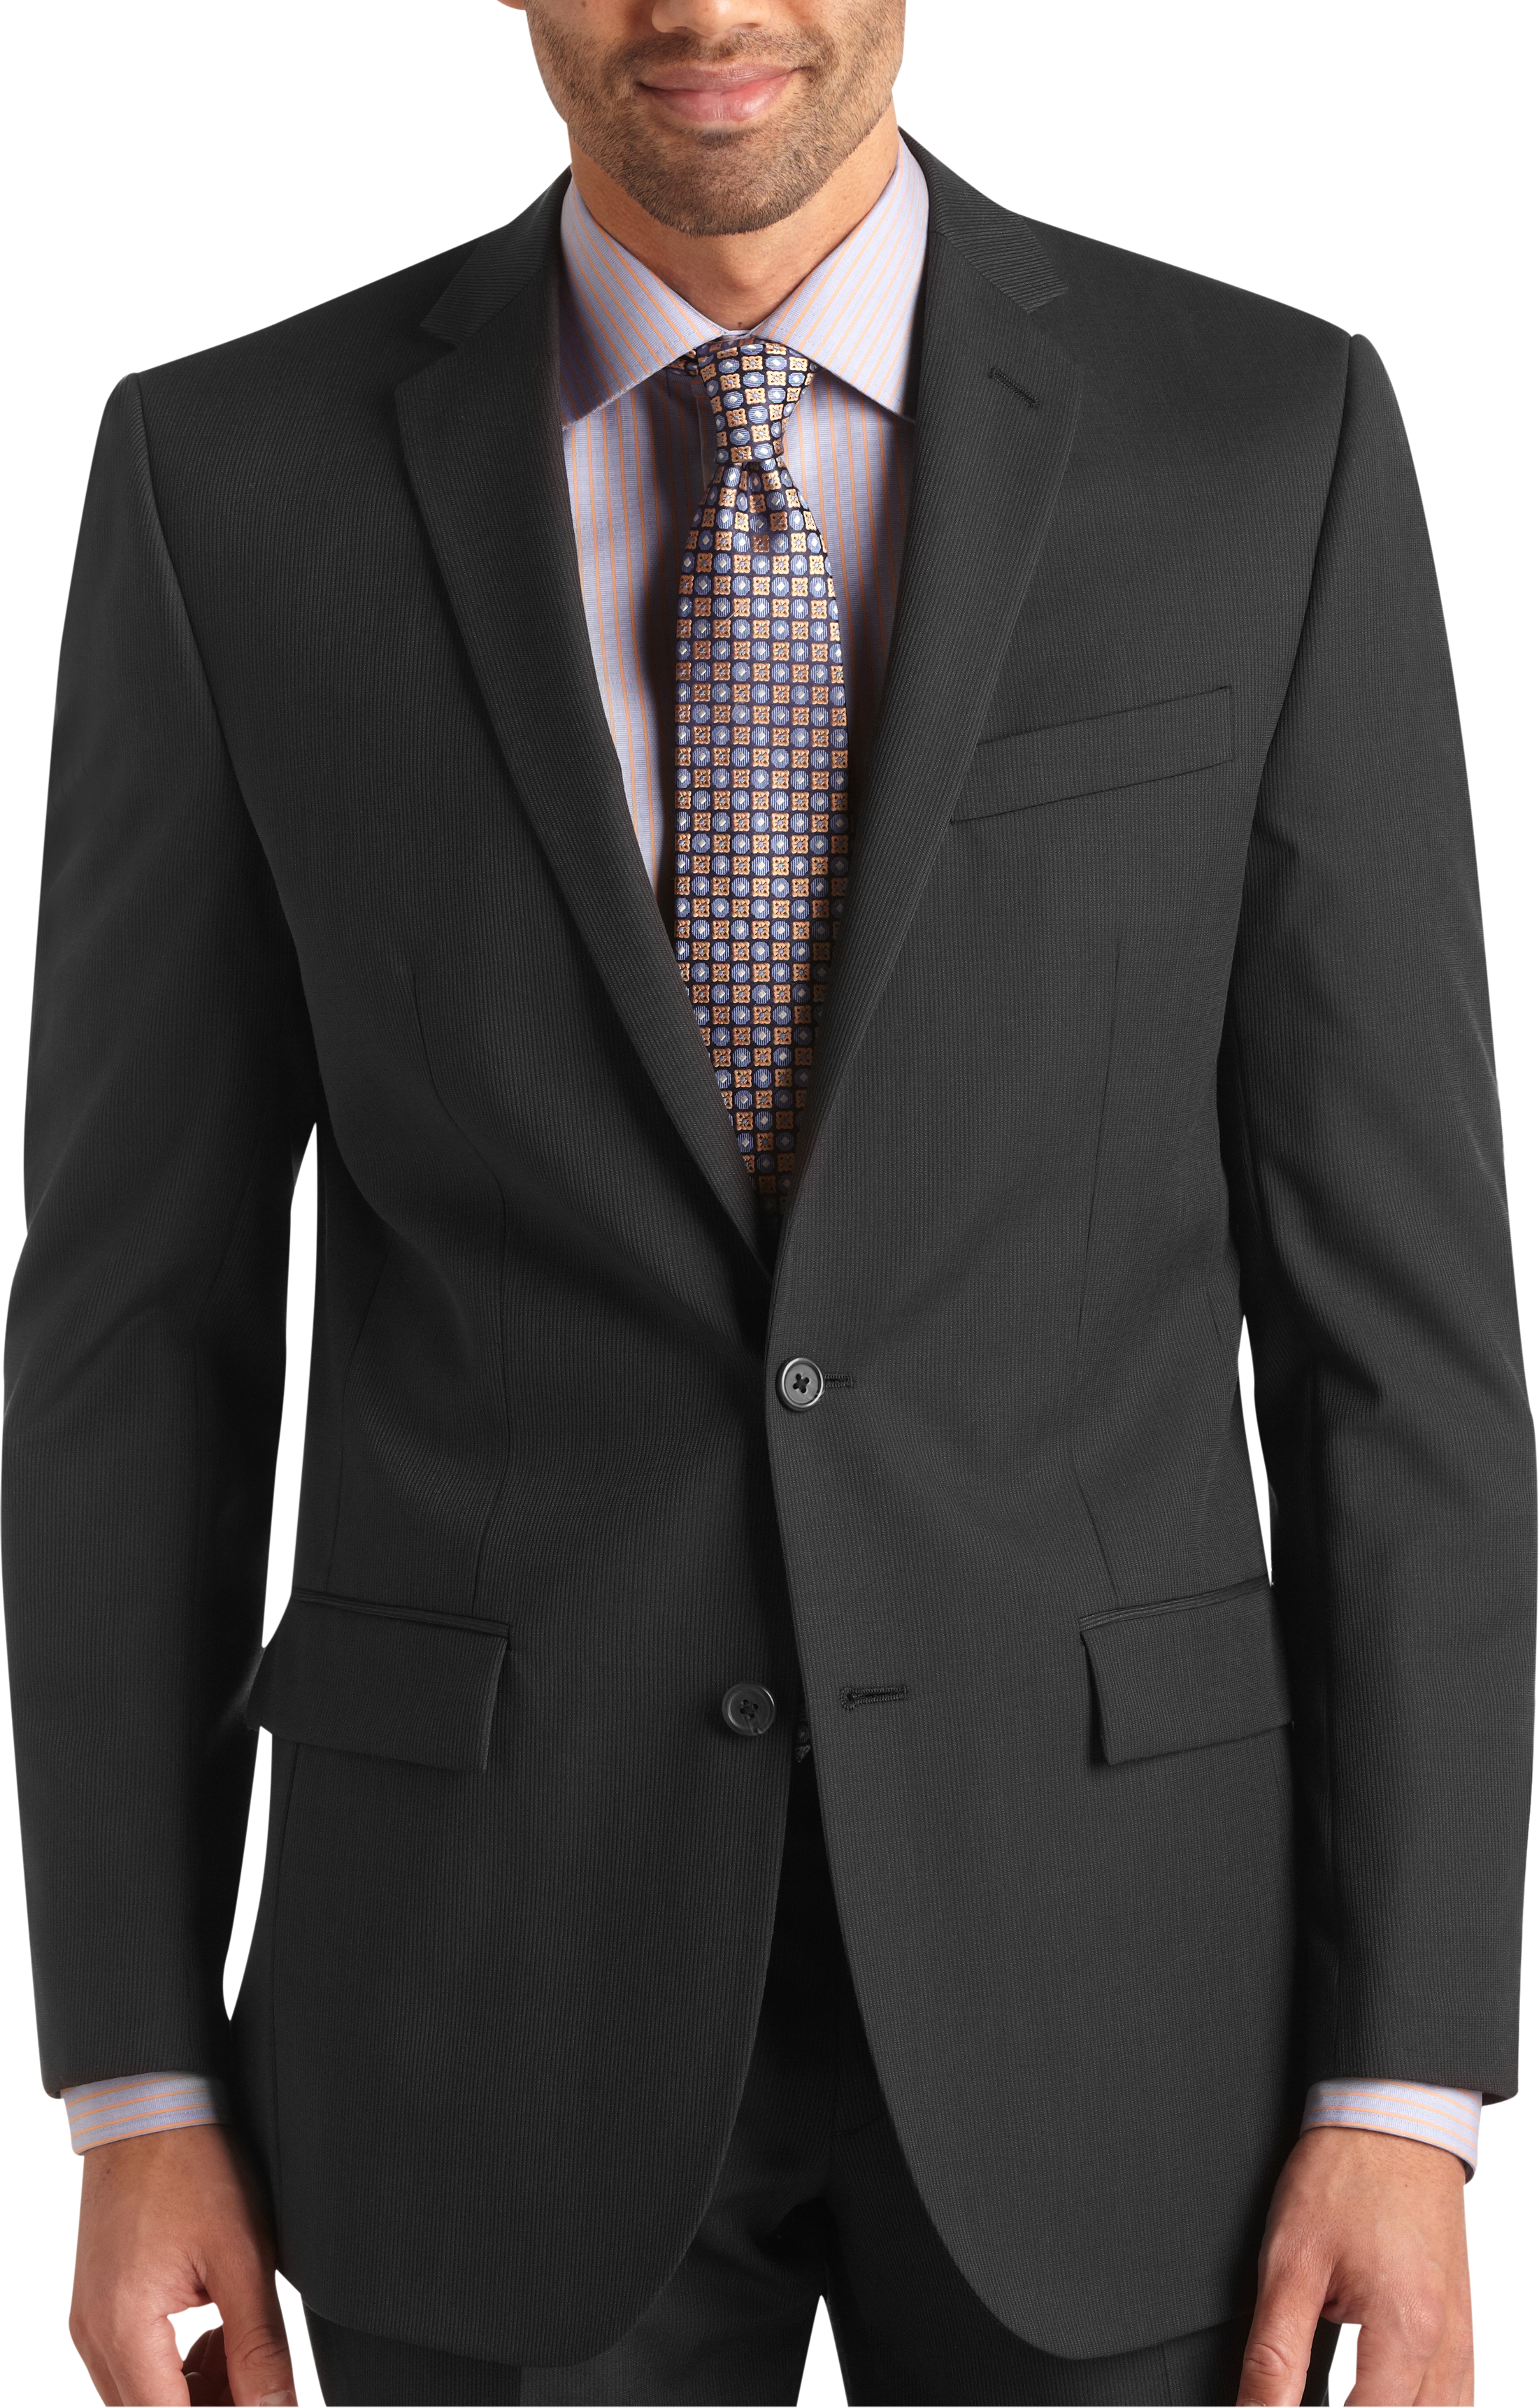 Egara Charcoal Stripe Slim Fit Suit Separates Coat